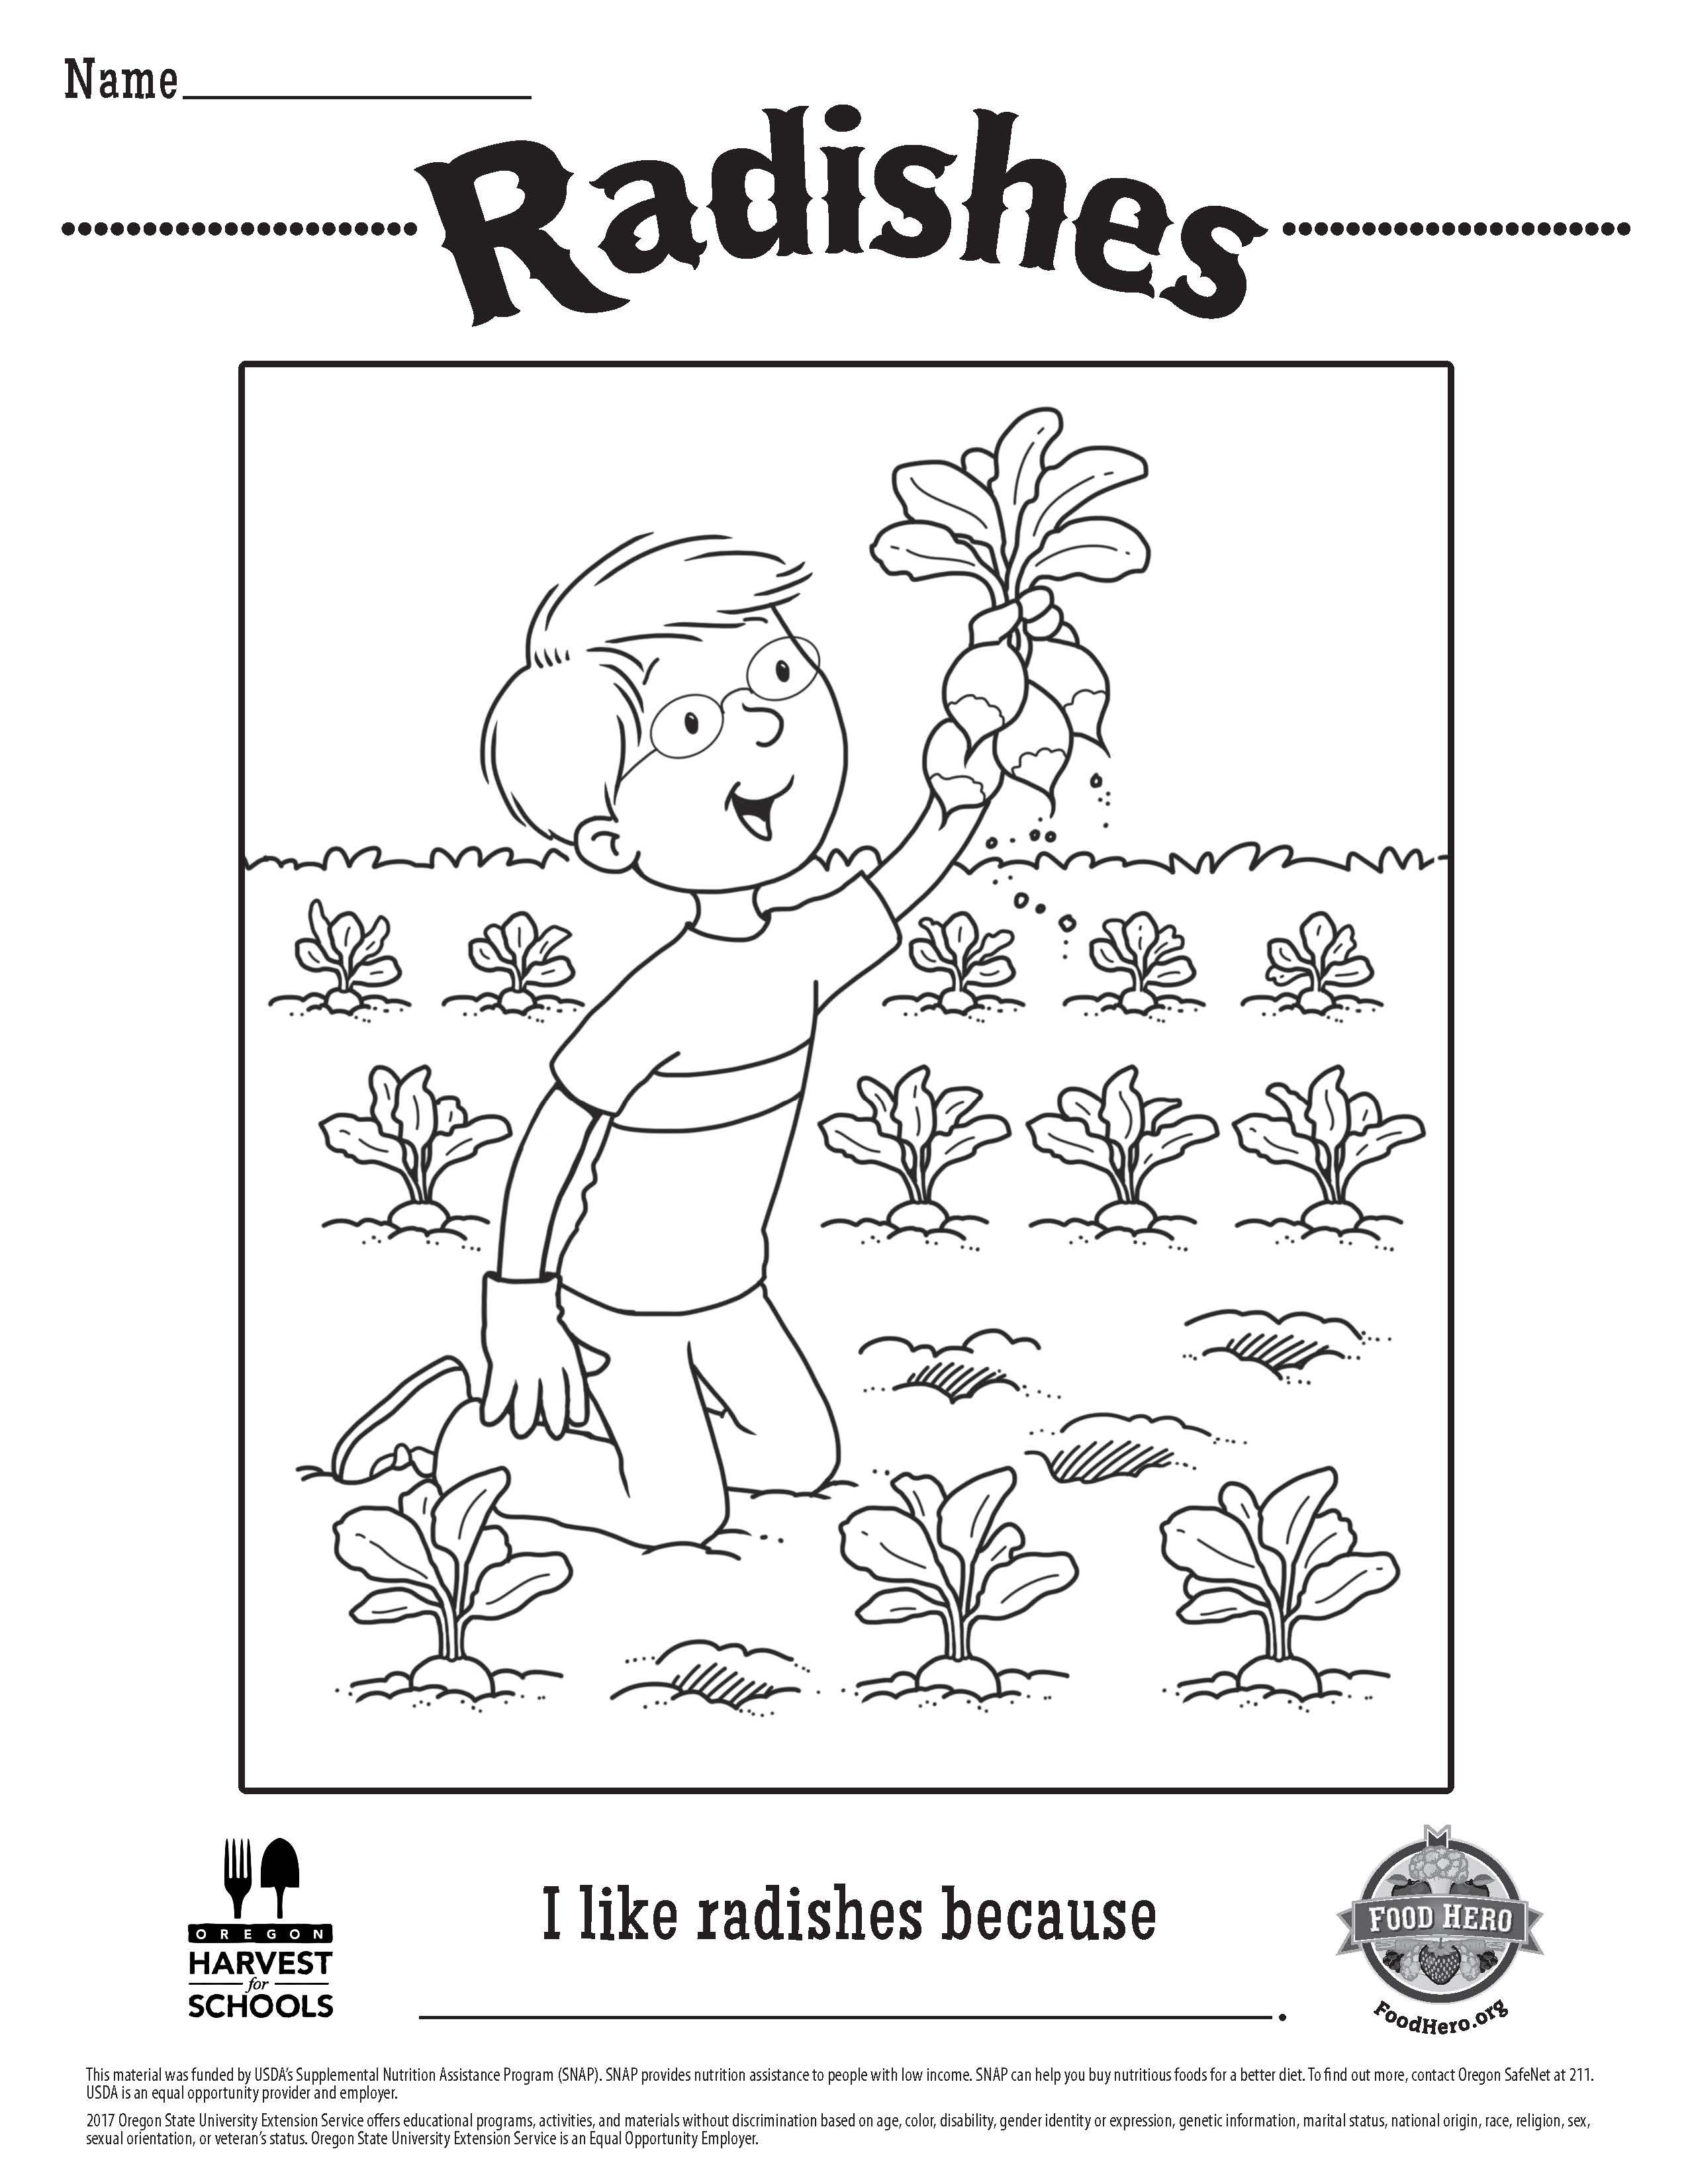 Radishes Food Hero Free Printable Childrens Coloring Sheet